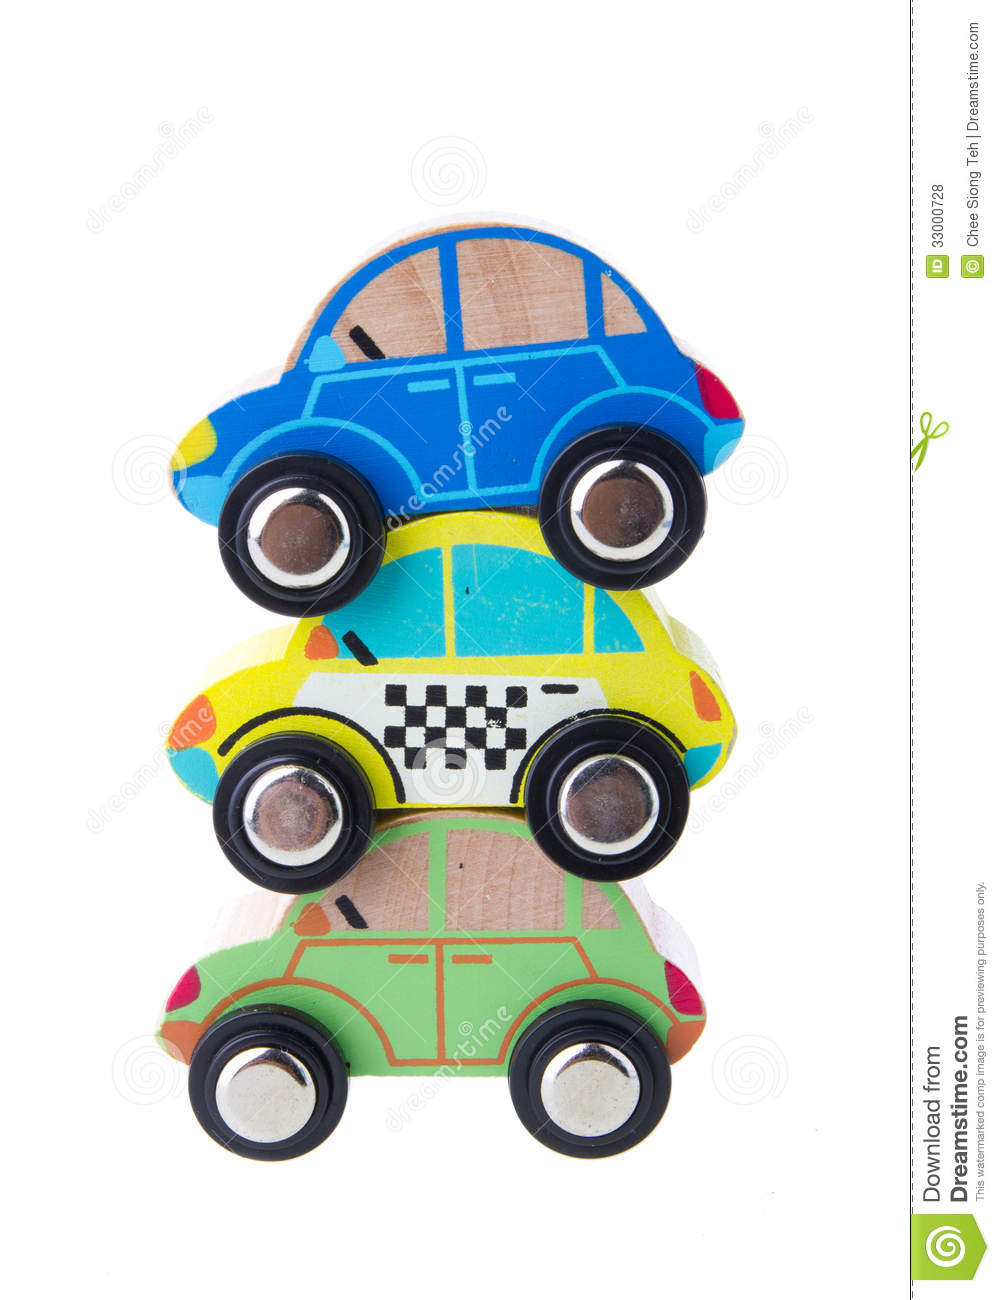 Wooden Cars Toys Royalty Free Stock Photos - Image: 33000728